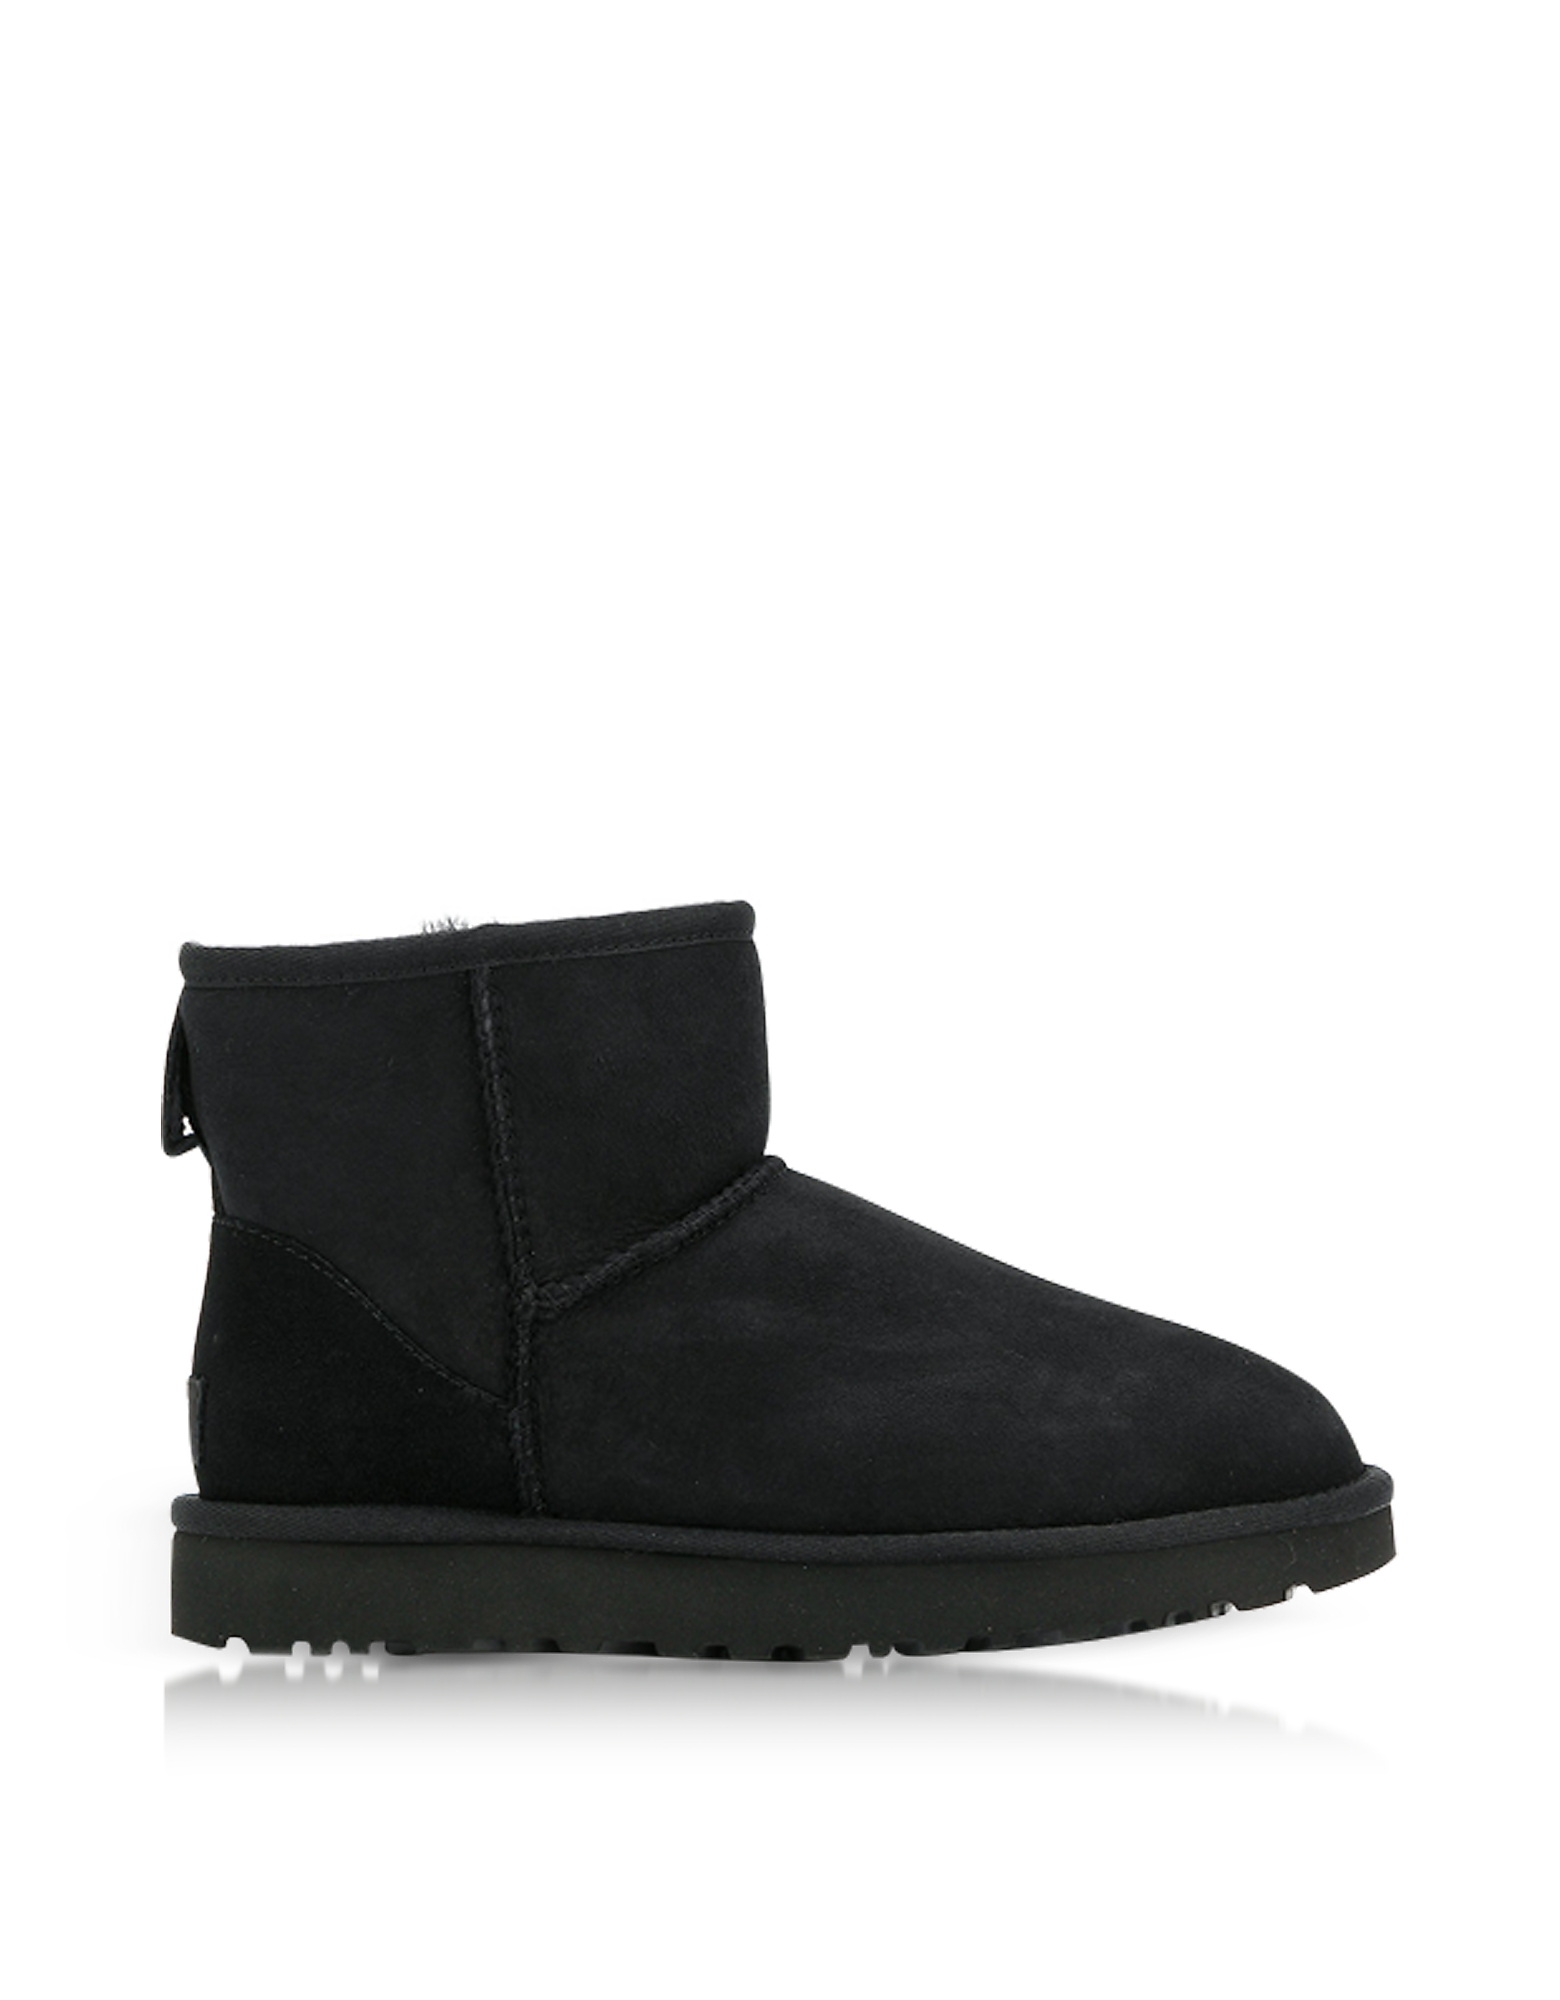 UGG Designer Shoes, Black Classic Mini II Boots